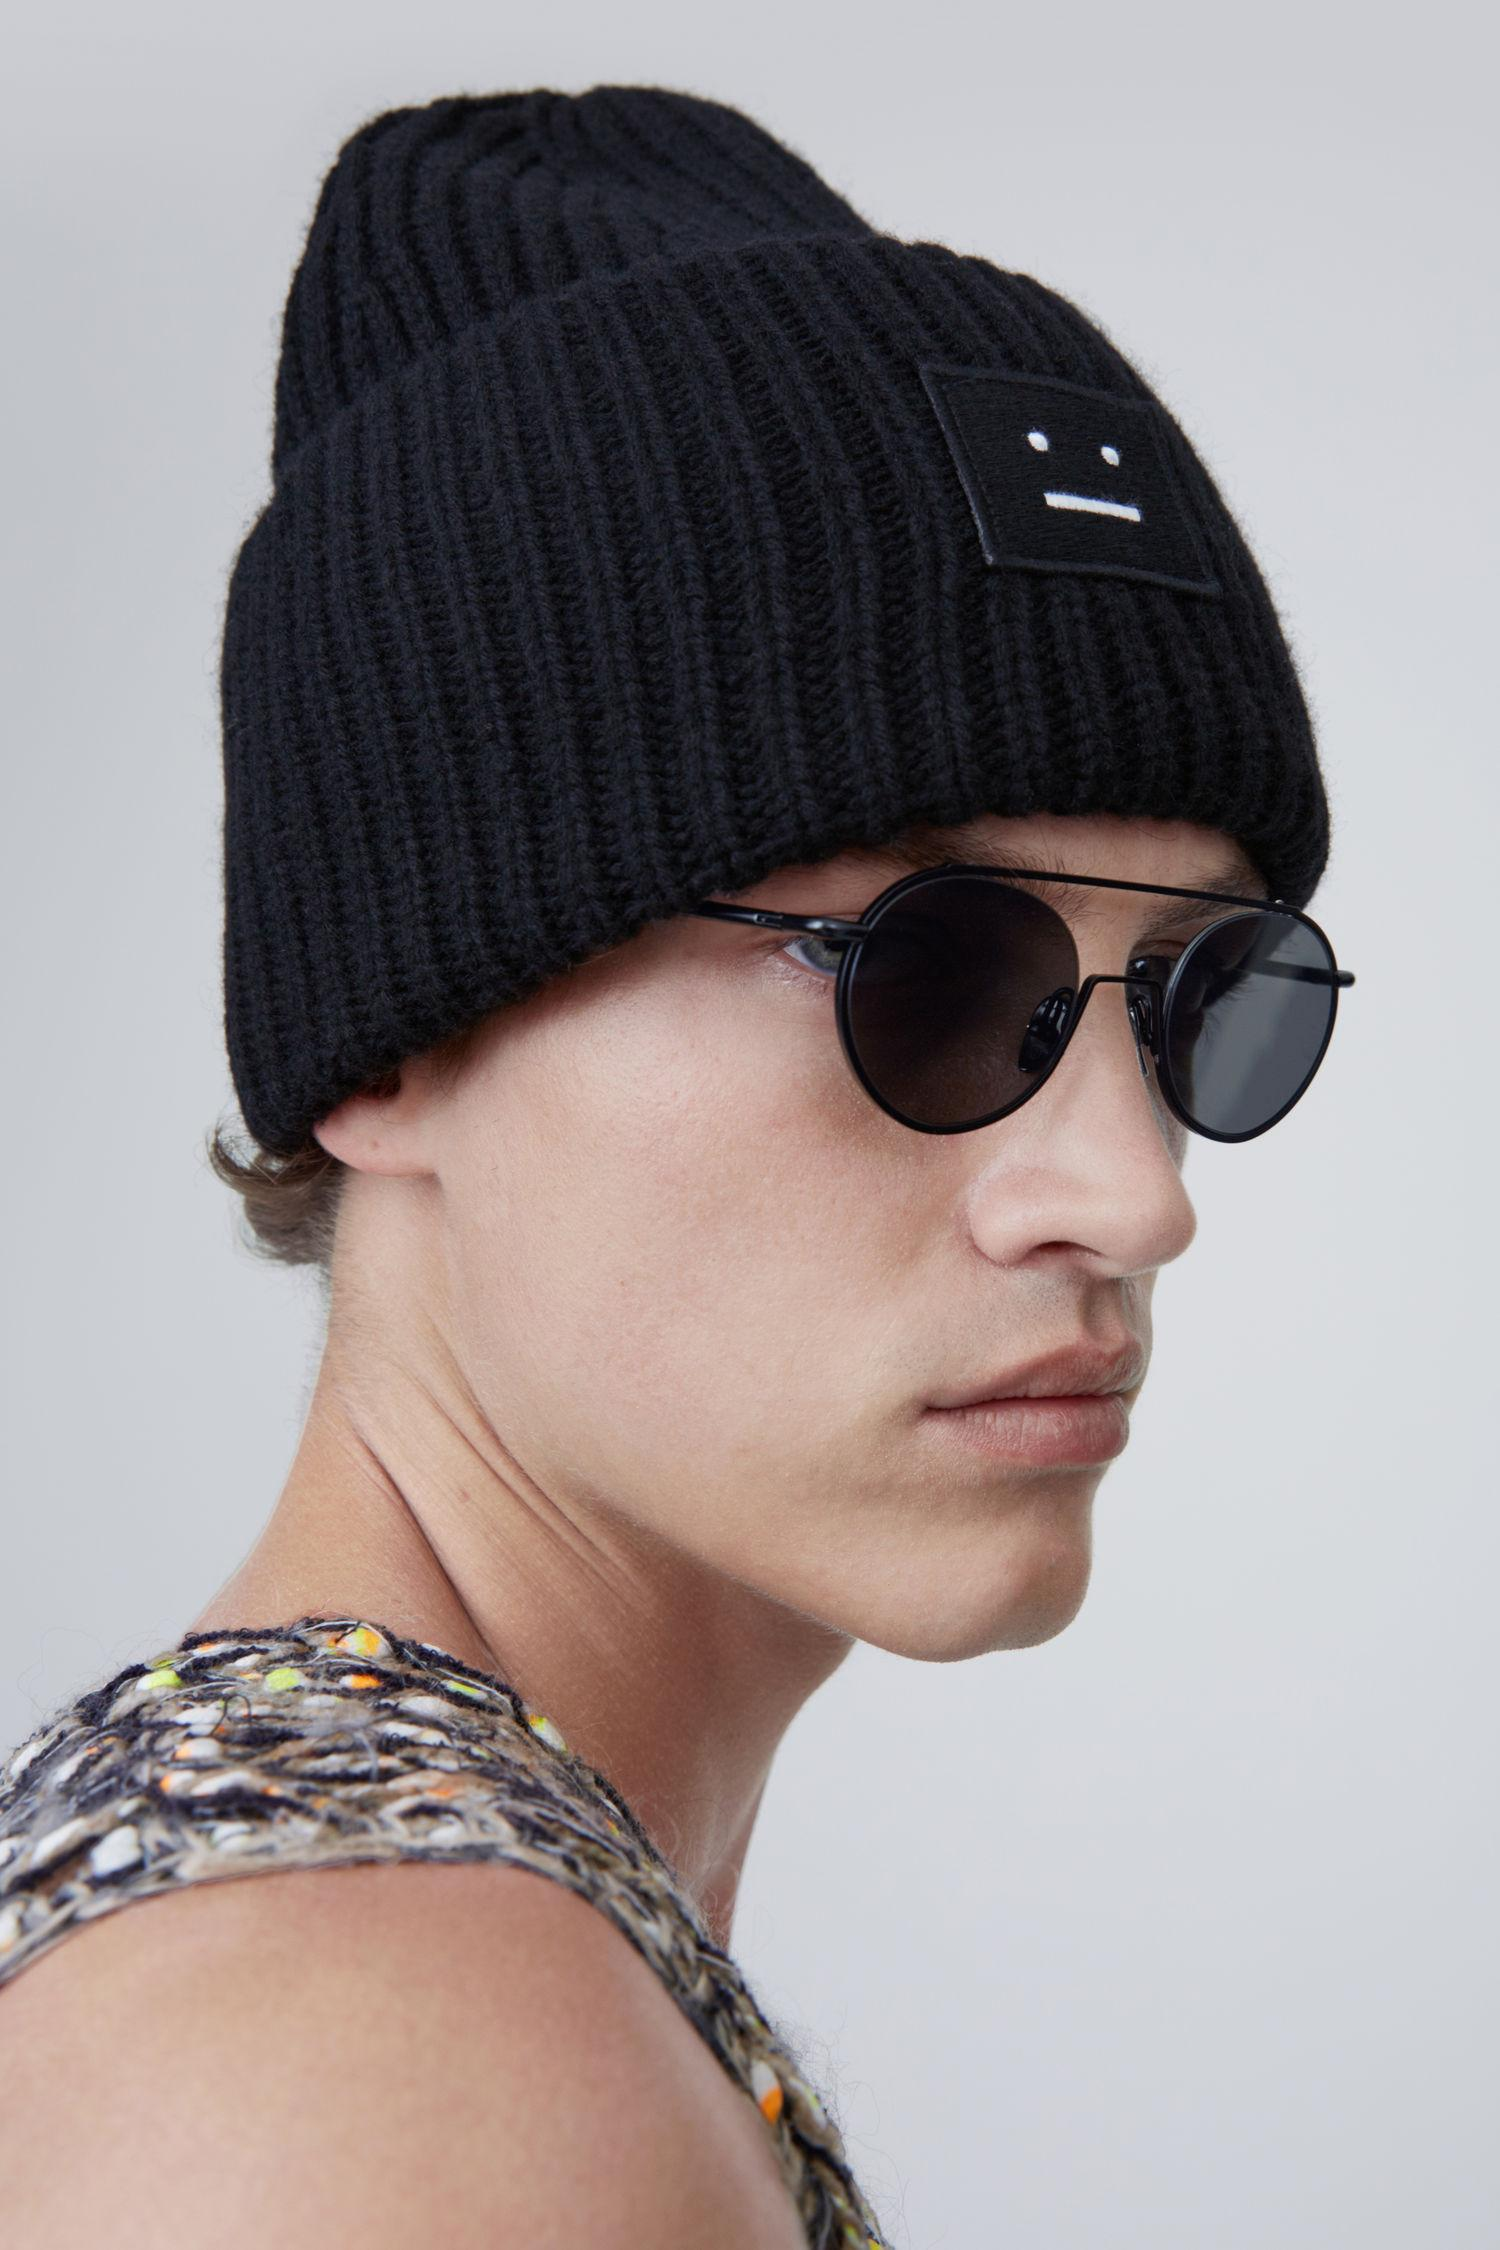 Lyst - Acne Studios Pansy Wool black in Black for Men a68f9e1a975